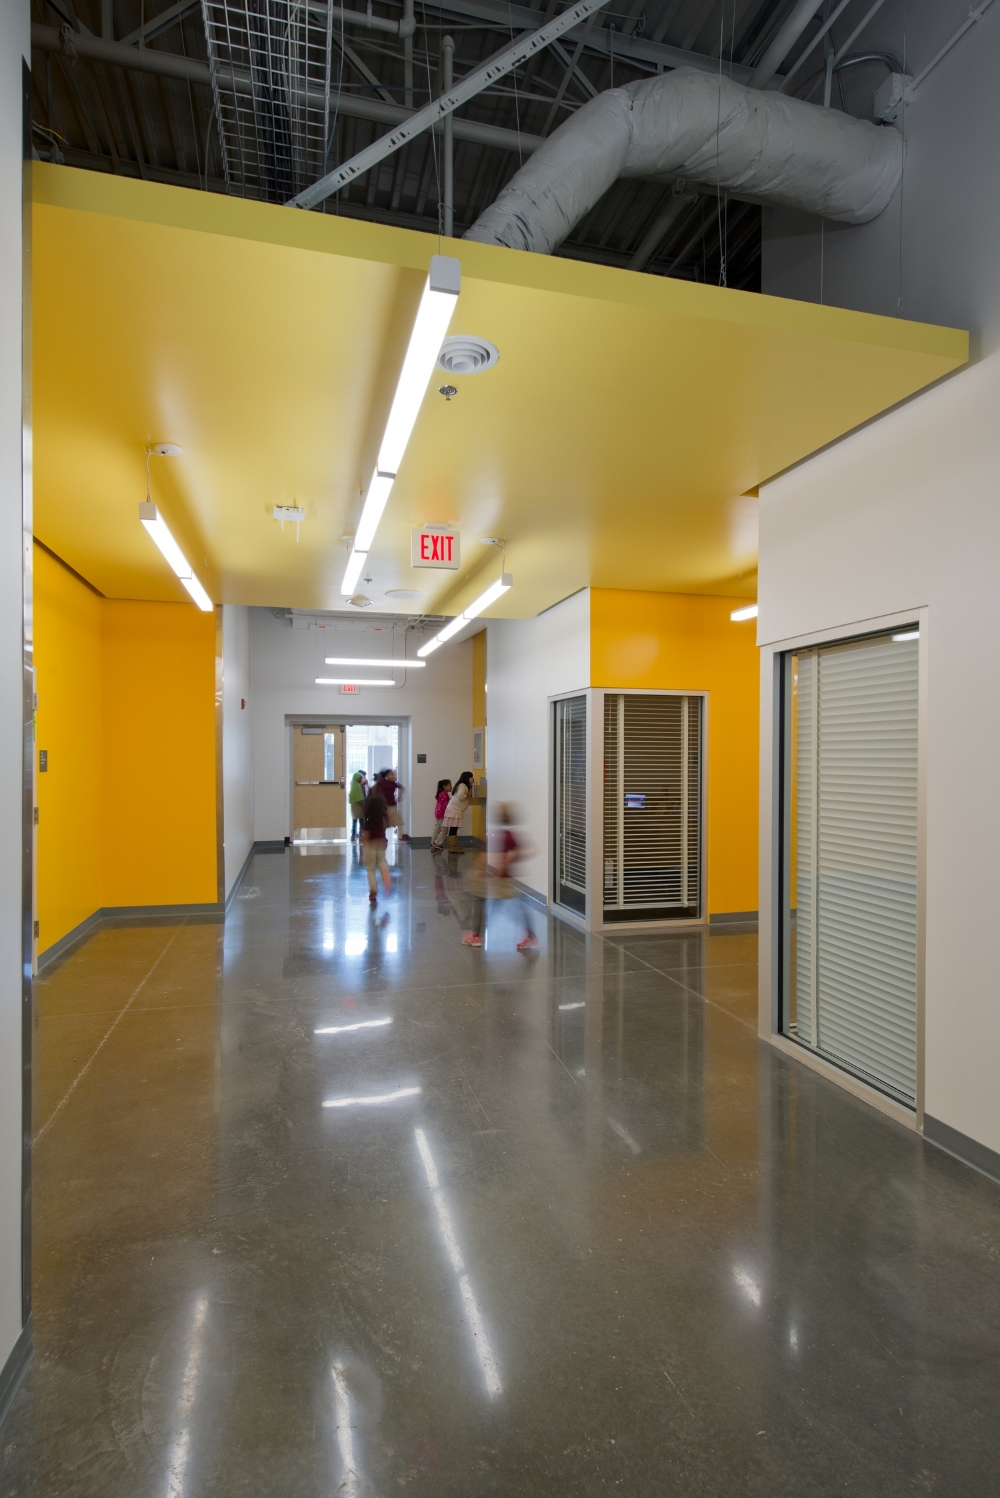 Ground-and-polished concrete provides a durable and elegant finish that can be easily maintained with non-toxic cleaning products.